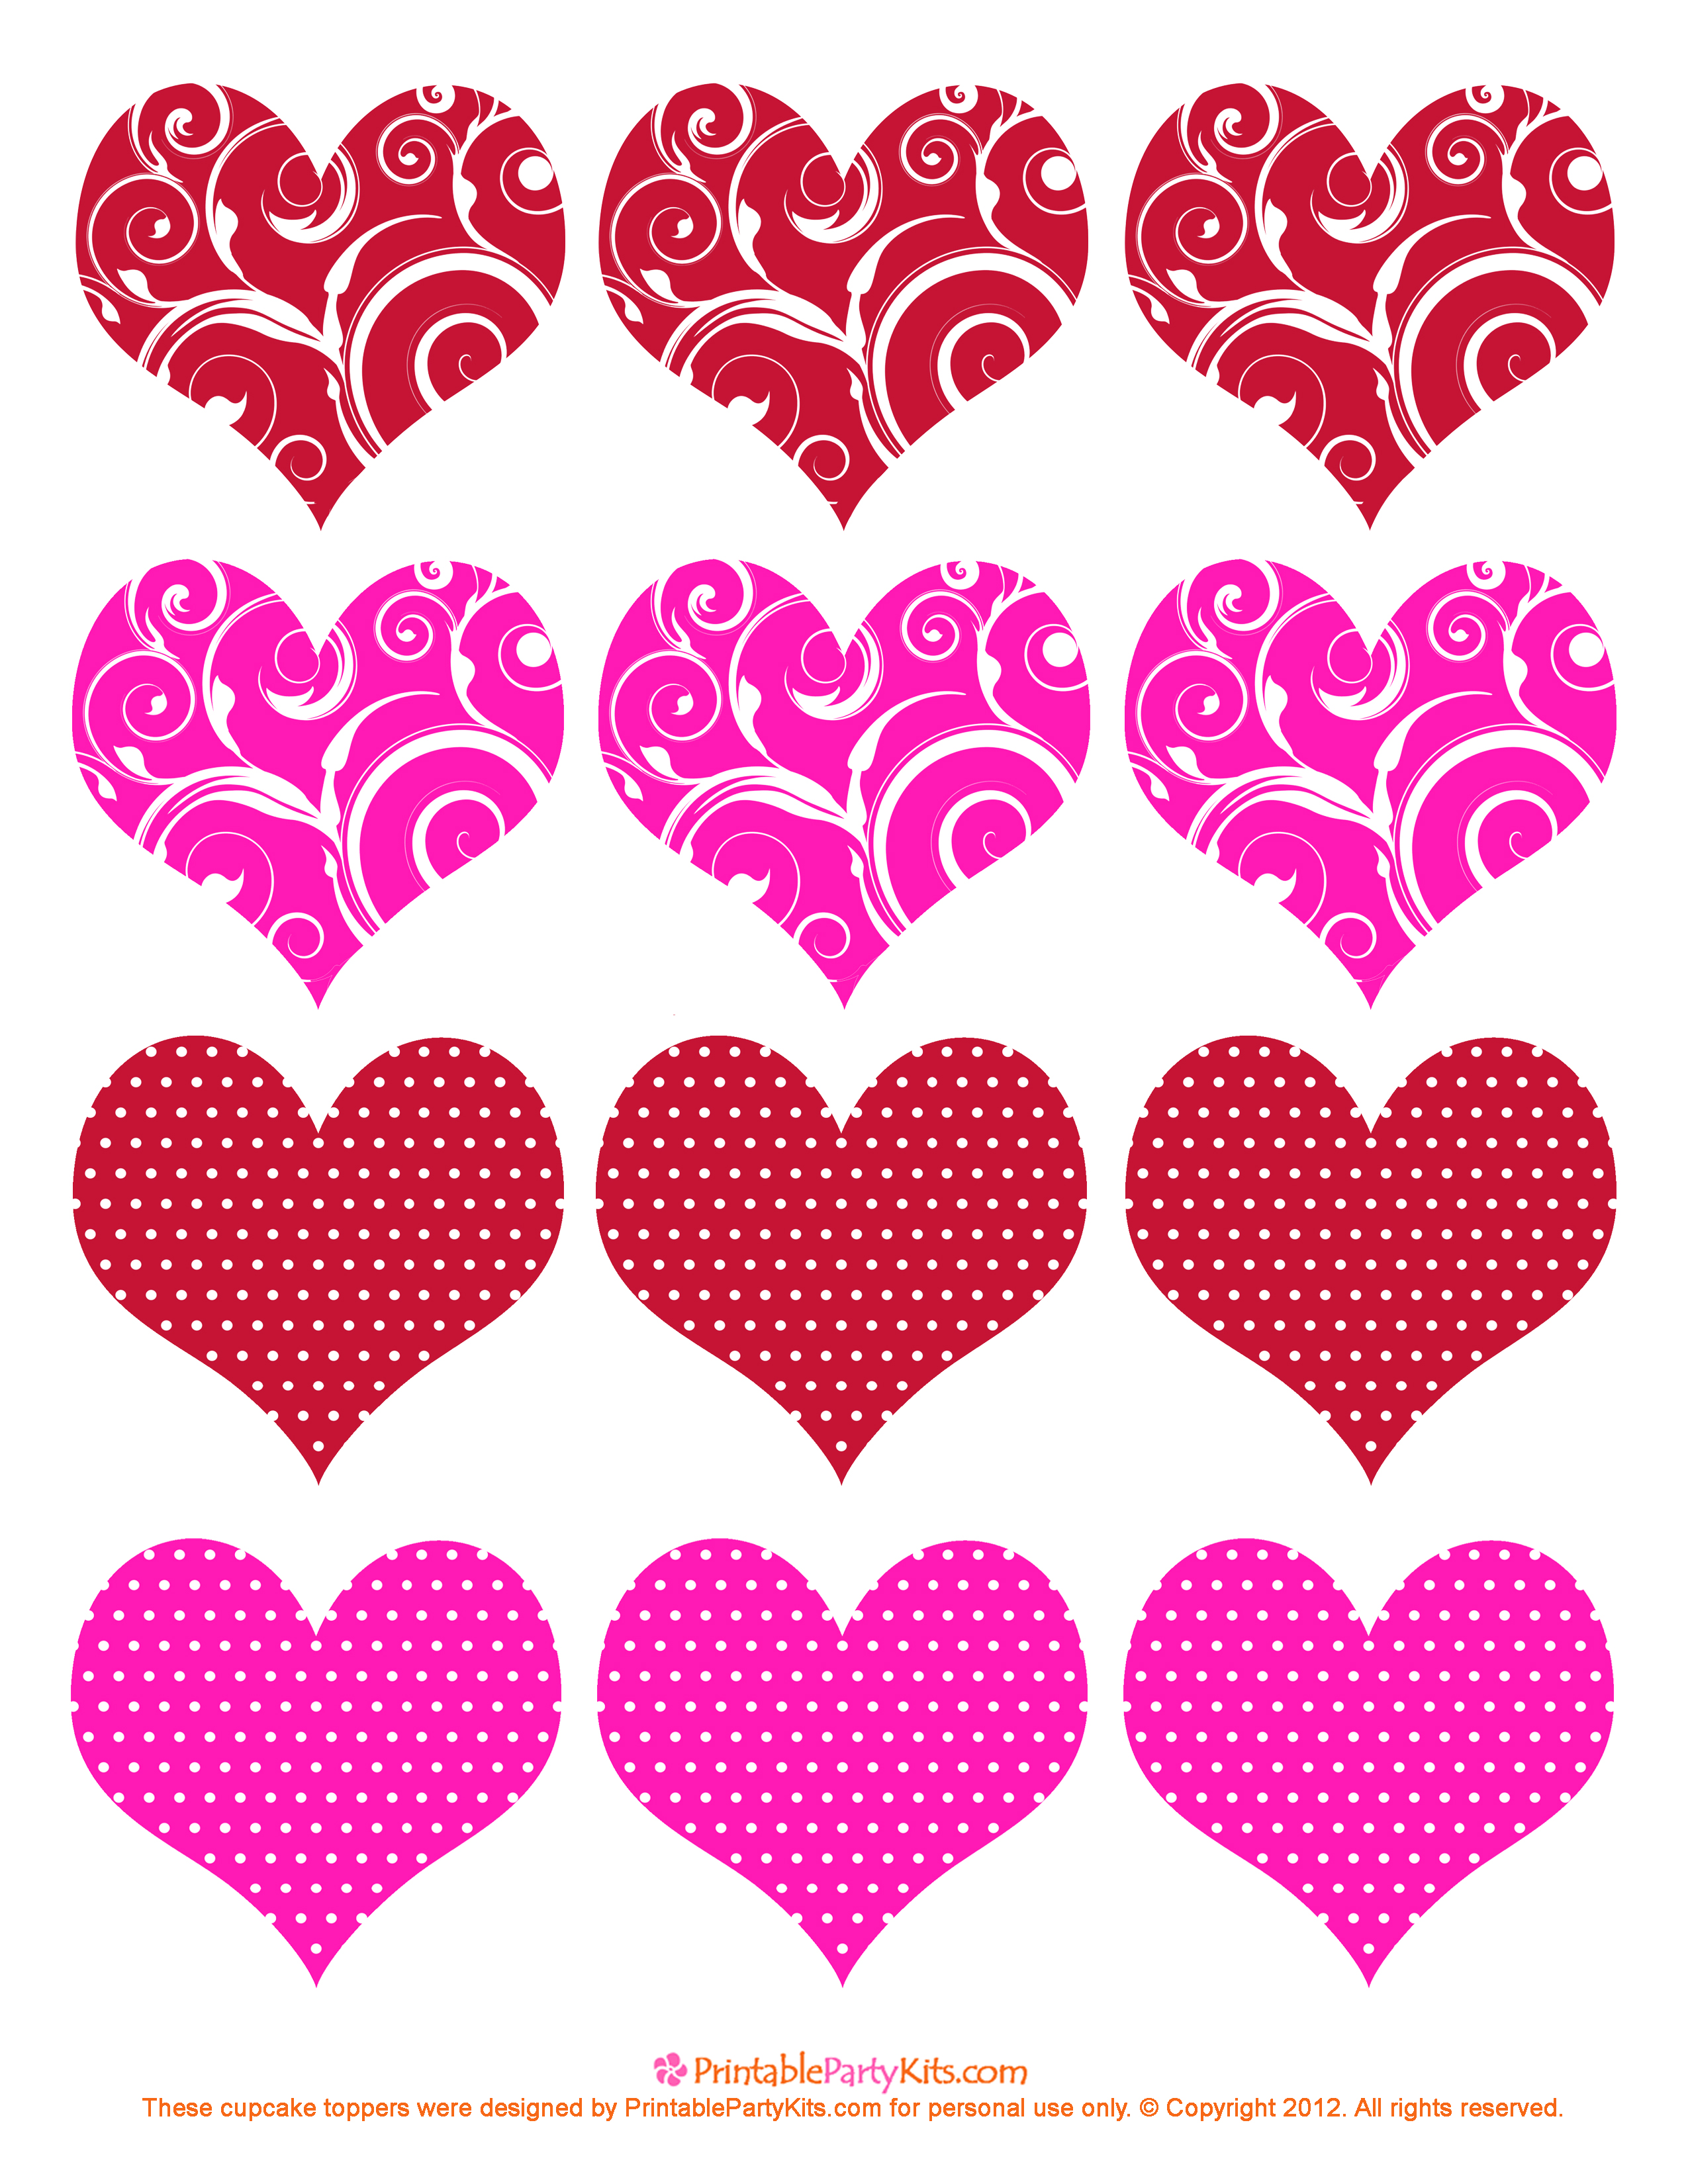 5 Images of Valentine Hearts Free Printable Template